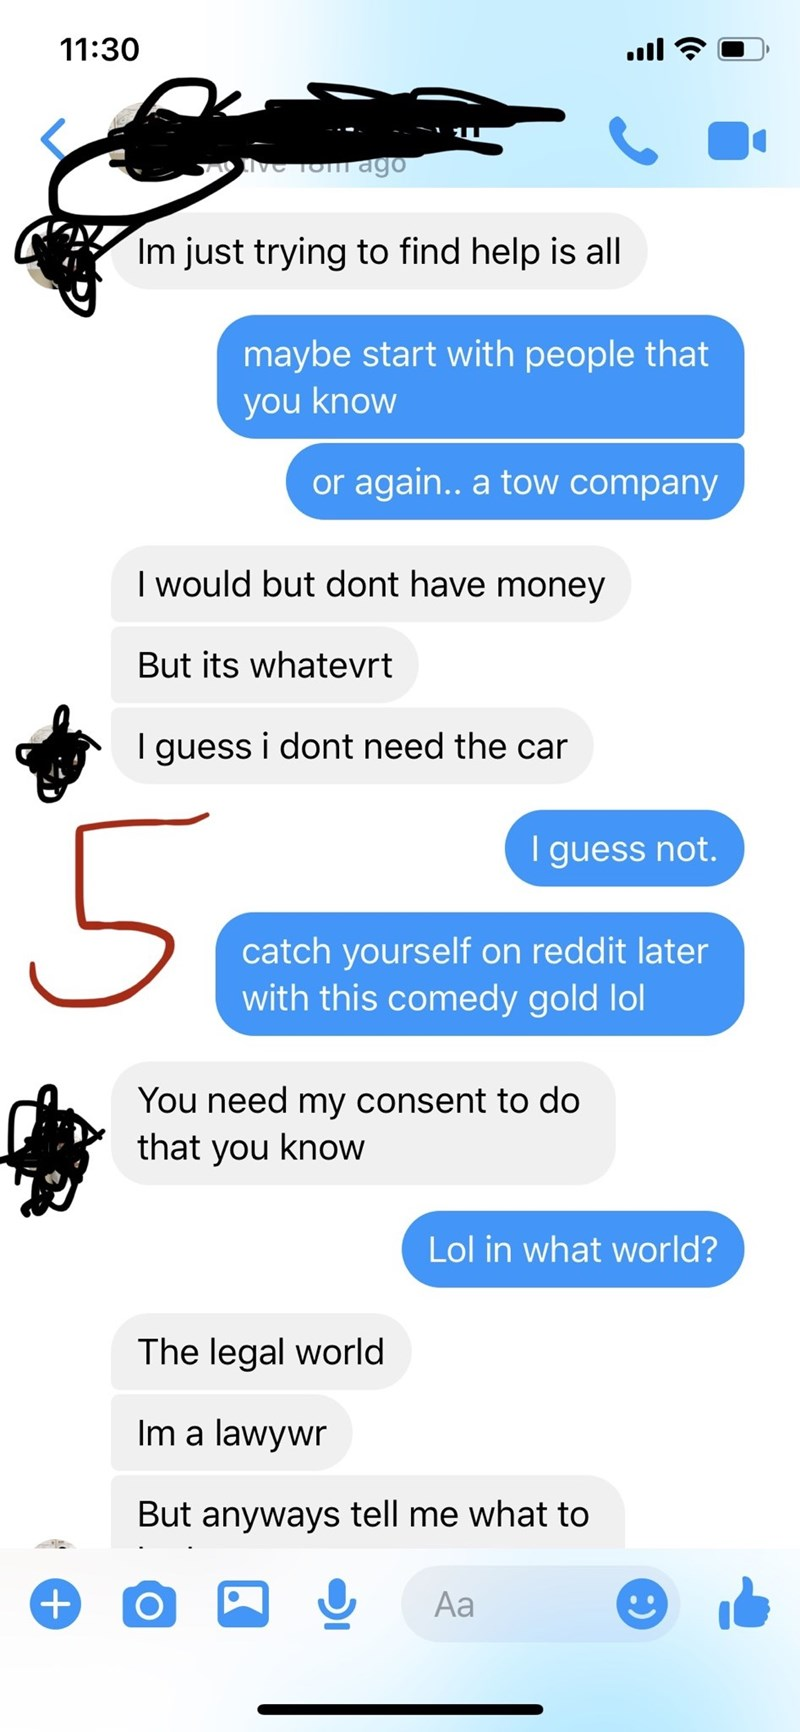 Text - 11:30 ull INGTom ago Im just trying to find help is all maybe start with people that you know or again.. a tow company I would but dont have money But its whatevrt I guess i dont need the car 50 I guess not. catch yourself on reddit later with this comedy gold lol You need my consent to do that you know Lol in what world? The legal world Im a lawywr But anyways tell me what to +) Aa :)